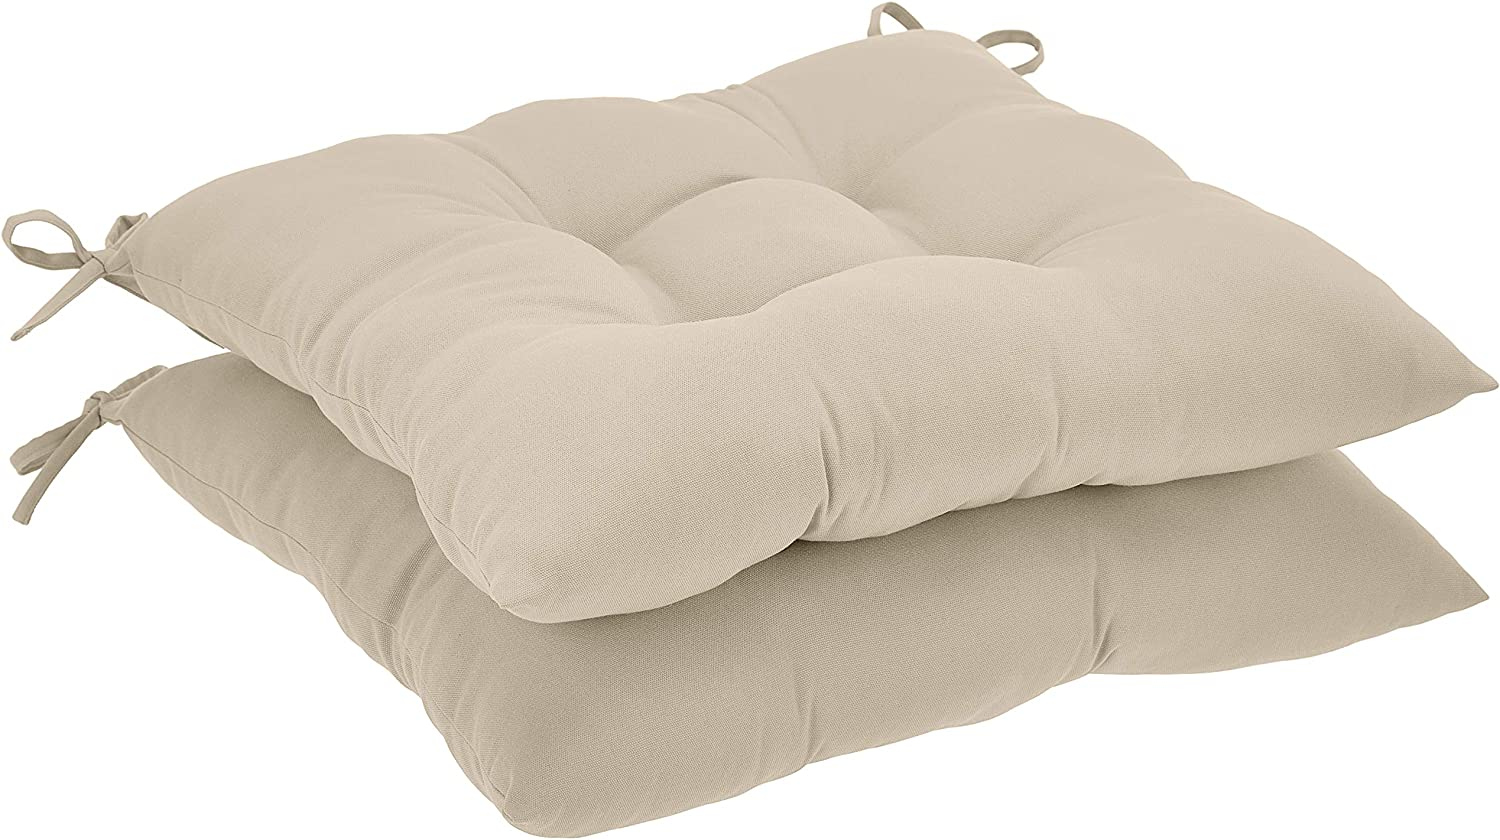 AmazonBasics Tufted Outdoor Square Seat Patio Cushion - Pack of 2, Khaki